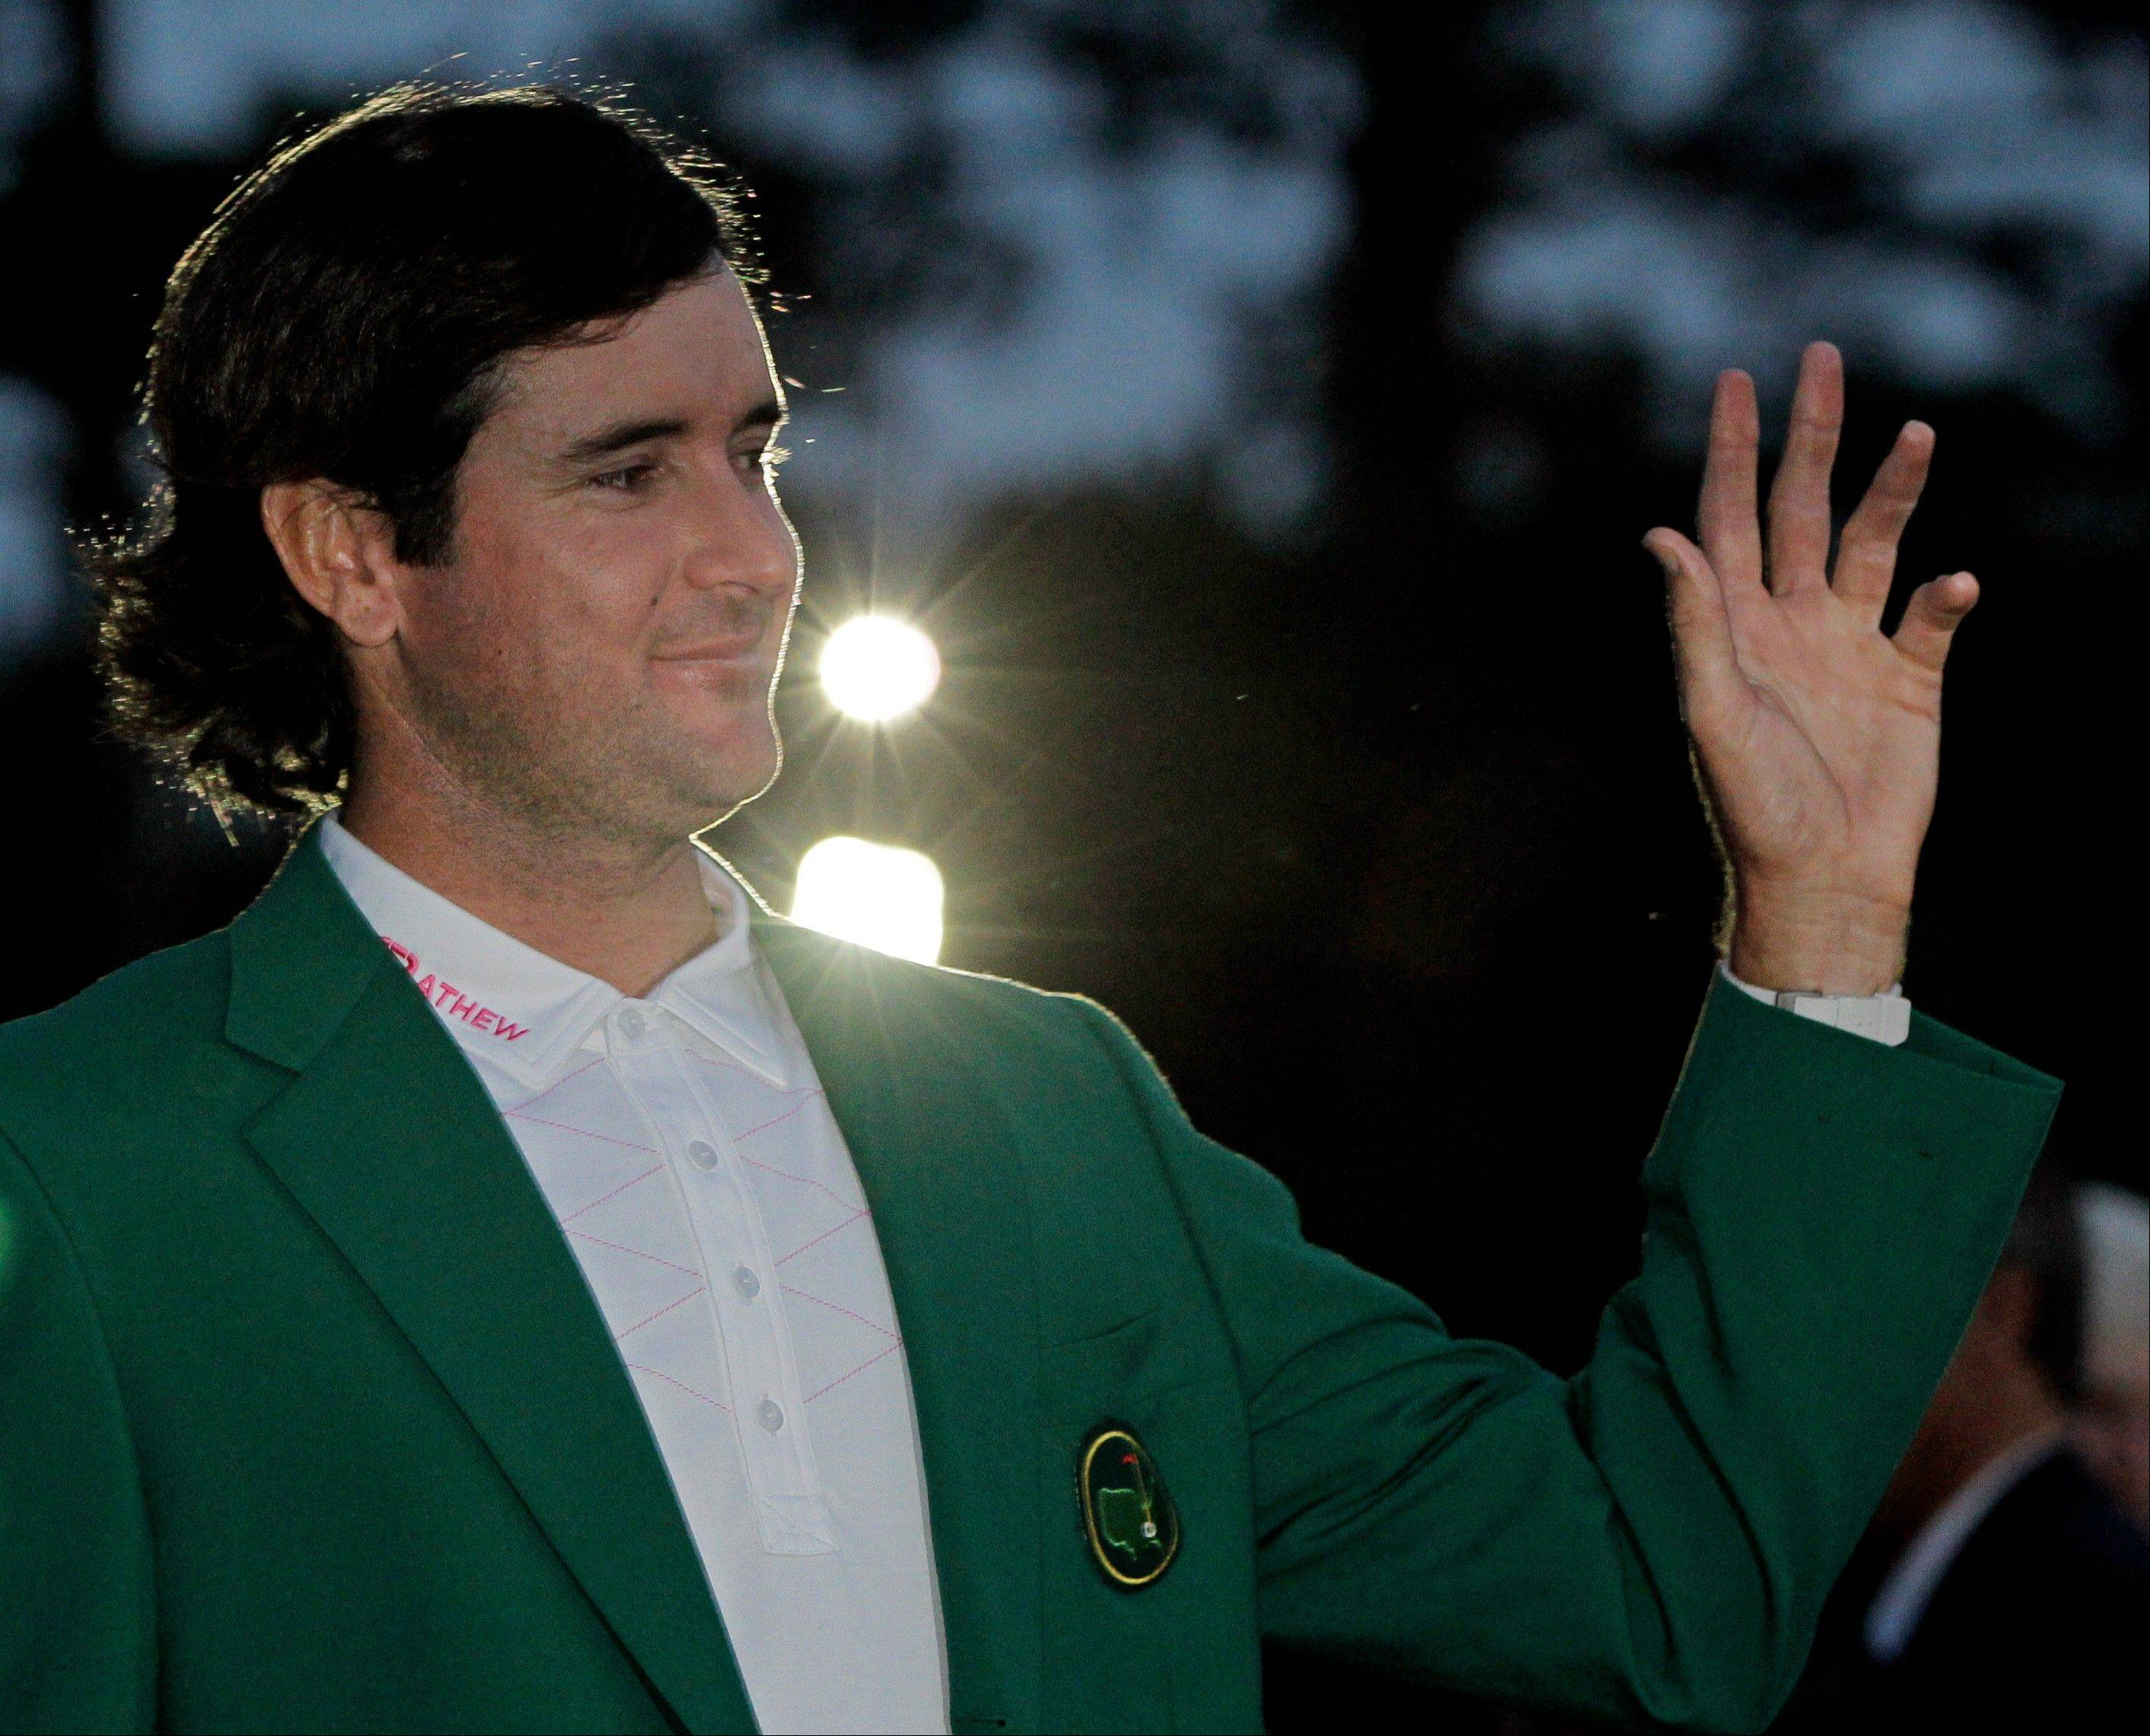 Bubba Watson, who won the green jacket at the 2012 Masters in a sudden-death playoff, also won the admiration of a caddie's wife when he made good on a bet.